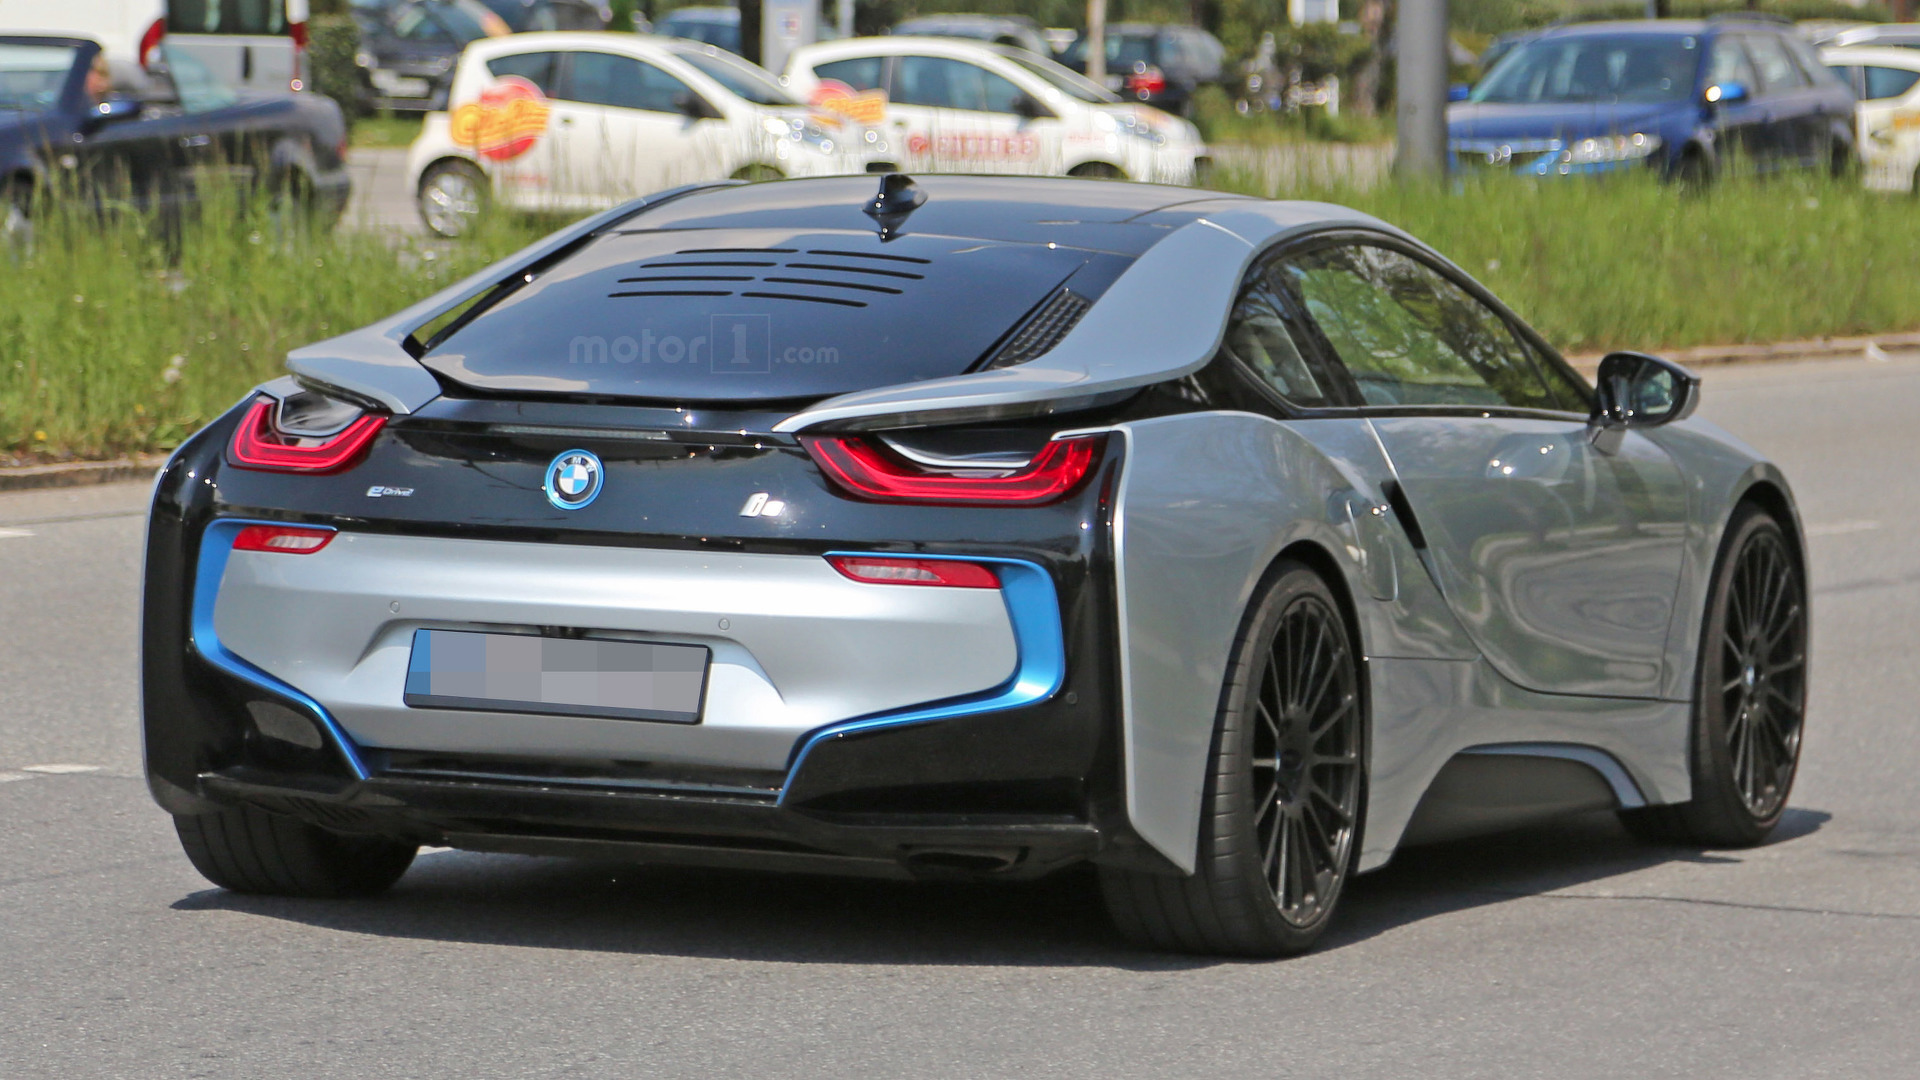 Potential high-performance BMW i8 variant spied with extra cooling vents